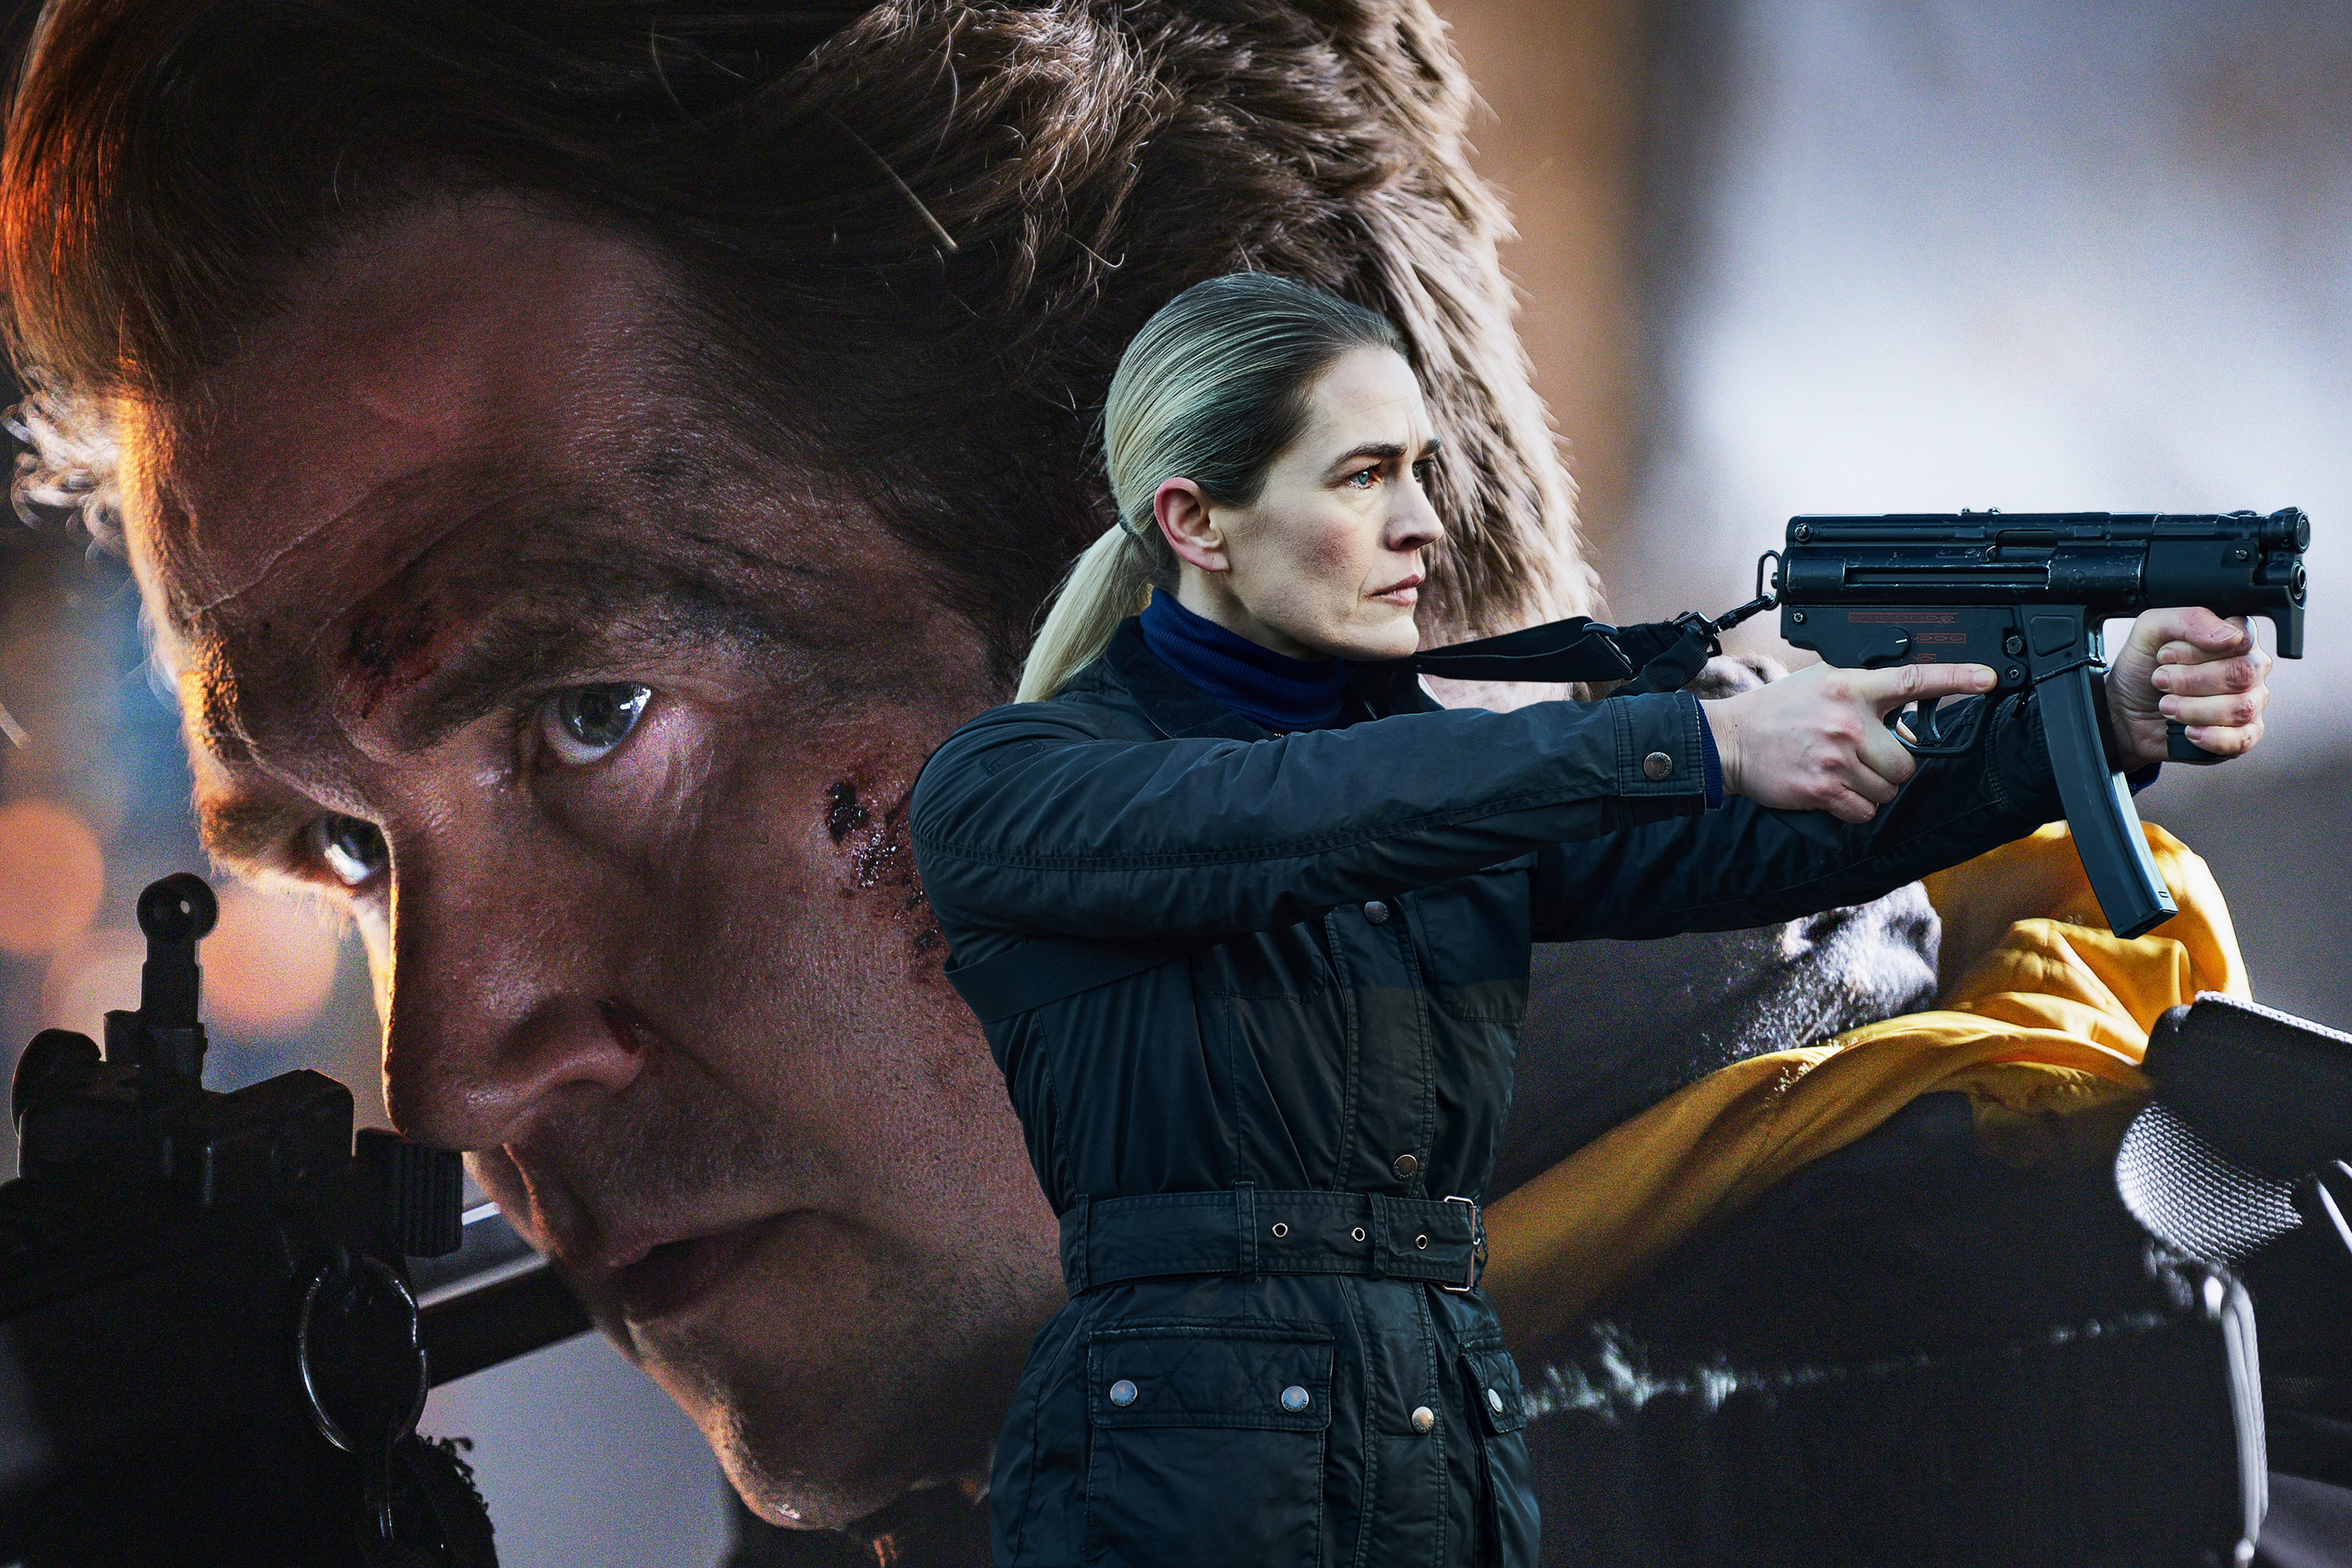 Photo-composition of close up of a man looking through gun slights and a blond woman holding a machine gun